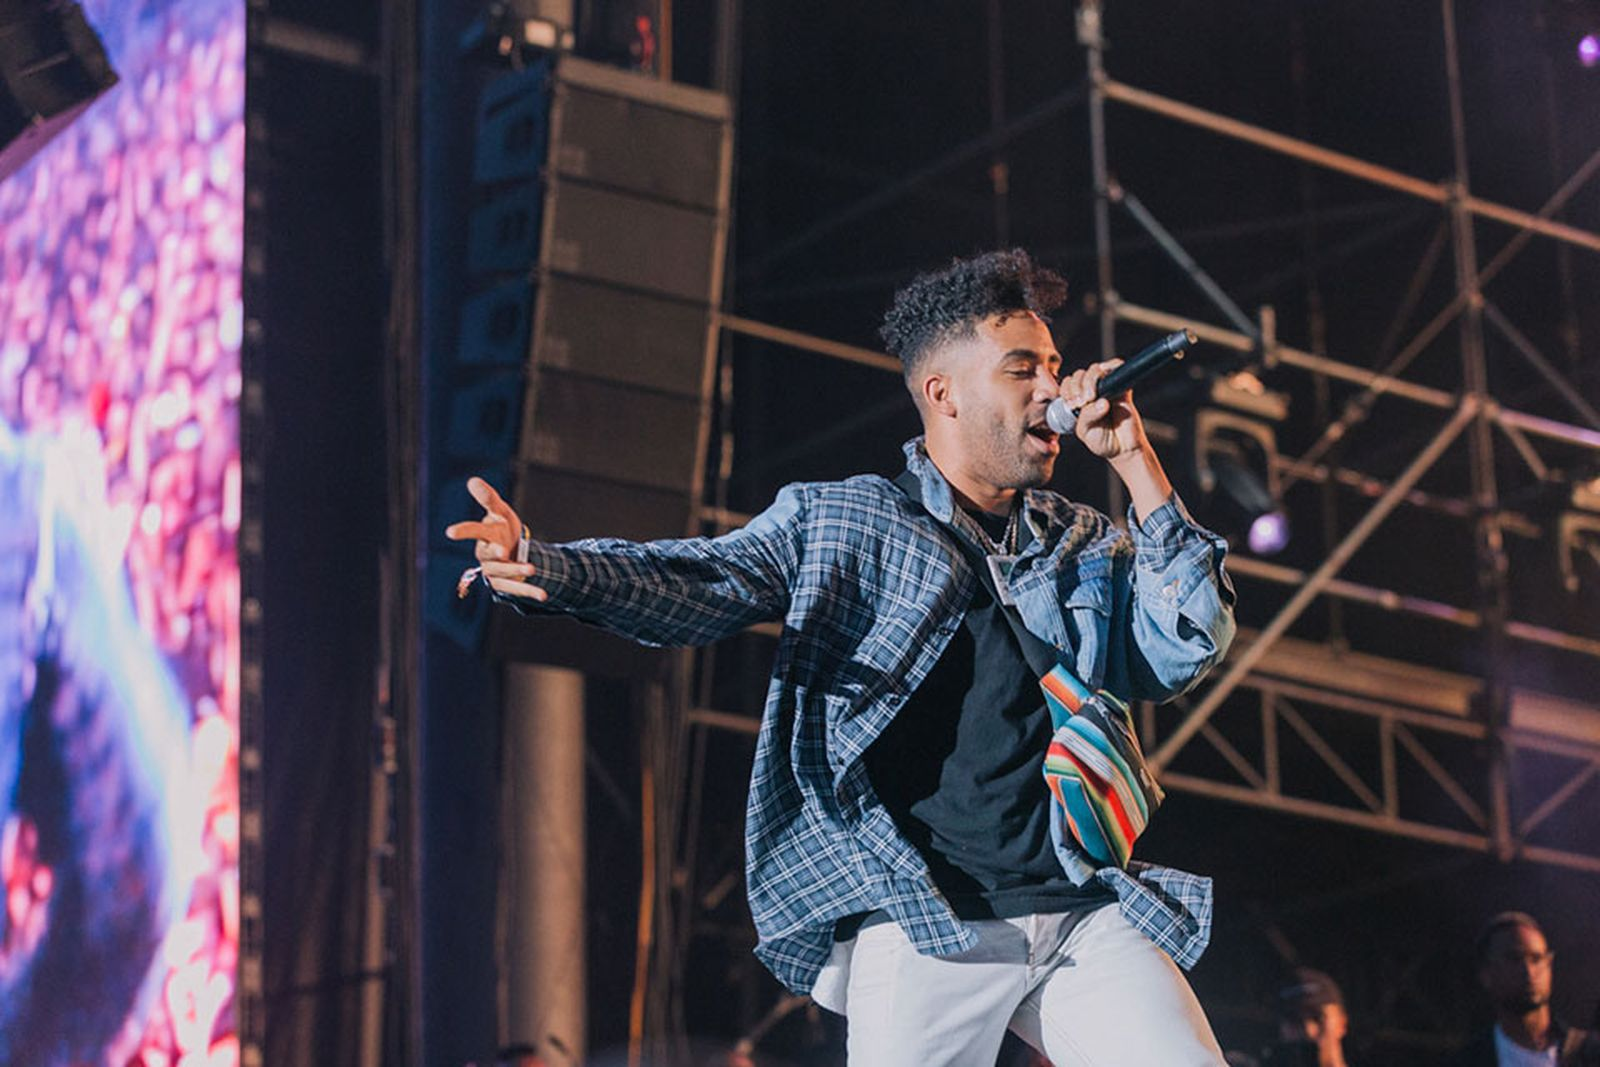 rolling loud miami 2019 gallery Blueface Gunna Lil Baby